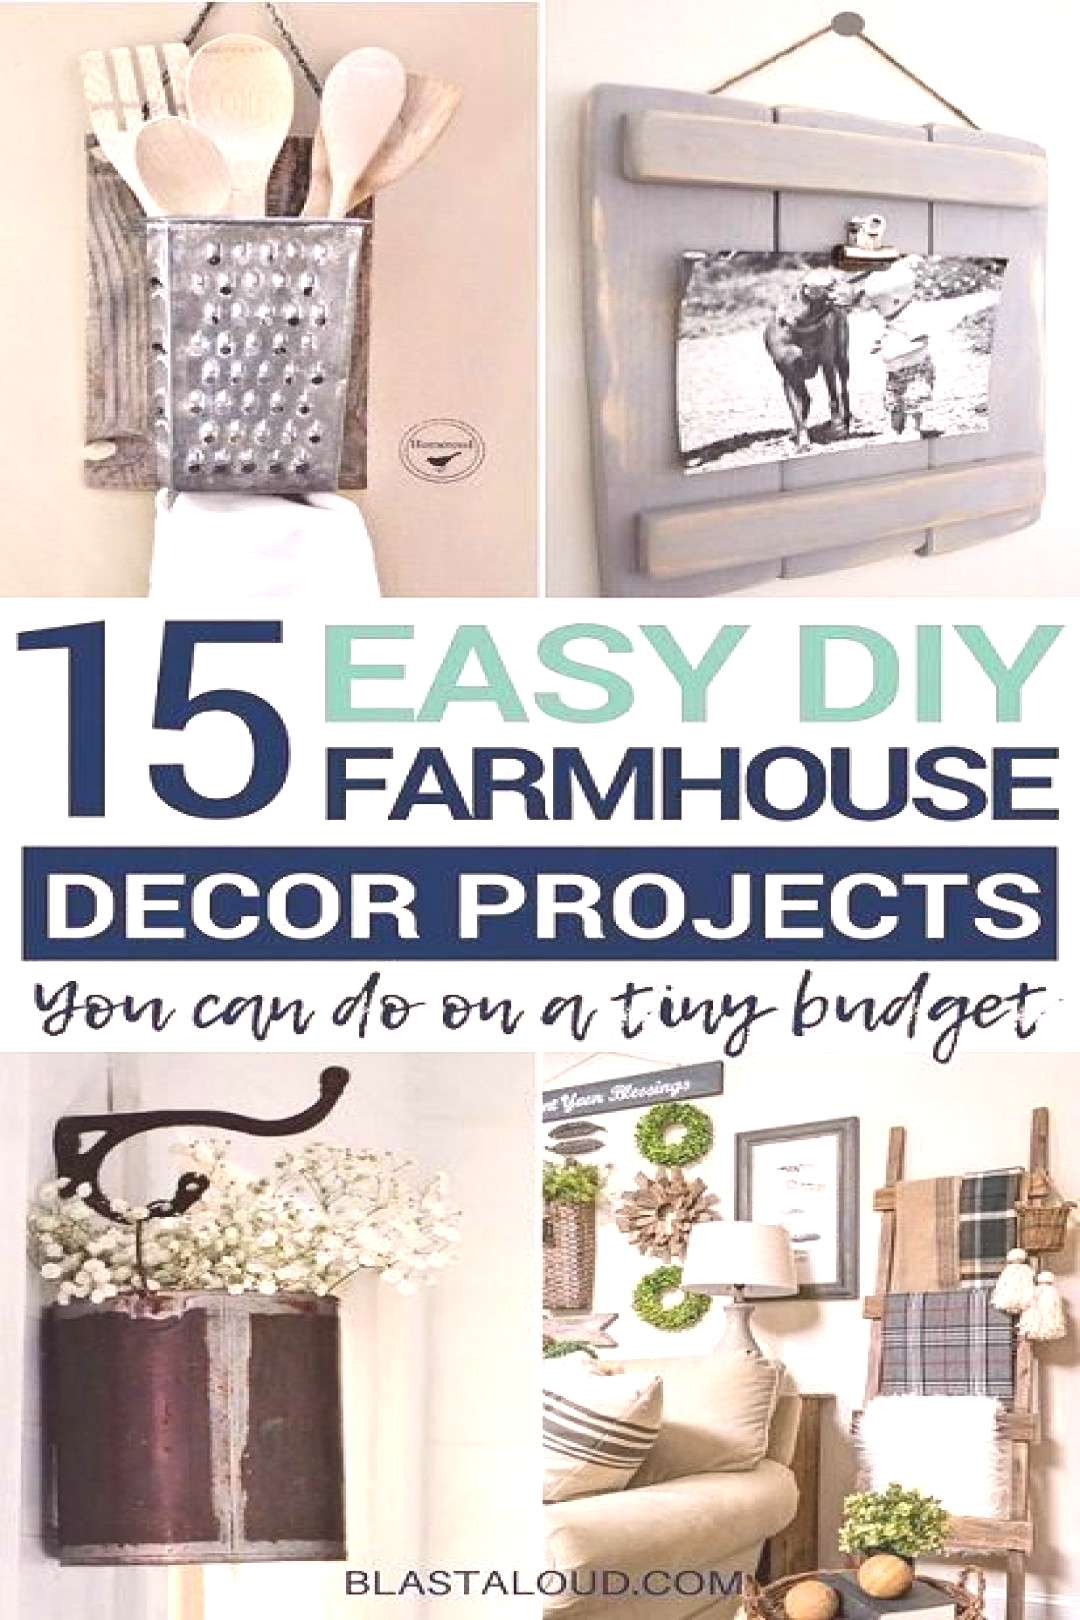 Looking for easy DIY farmhouse decor and furniture ideas that you can do on a budget? Then look no